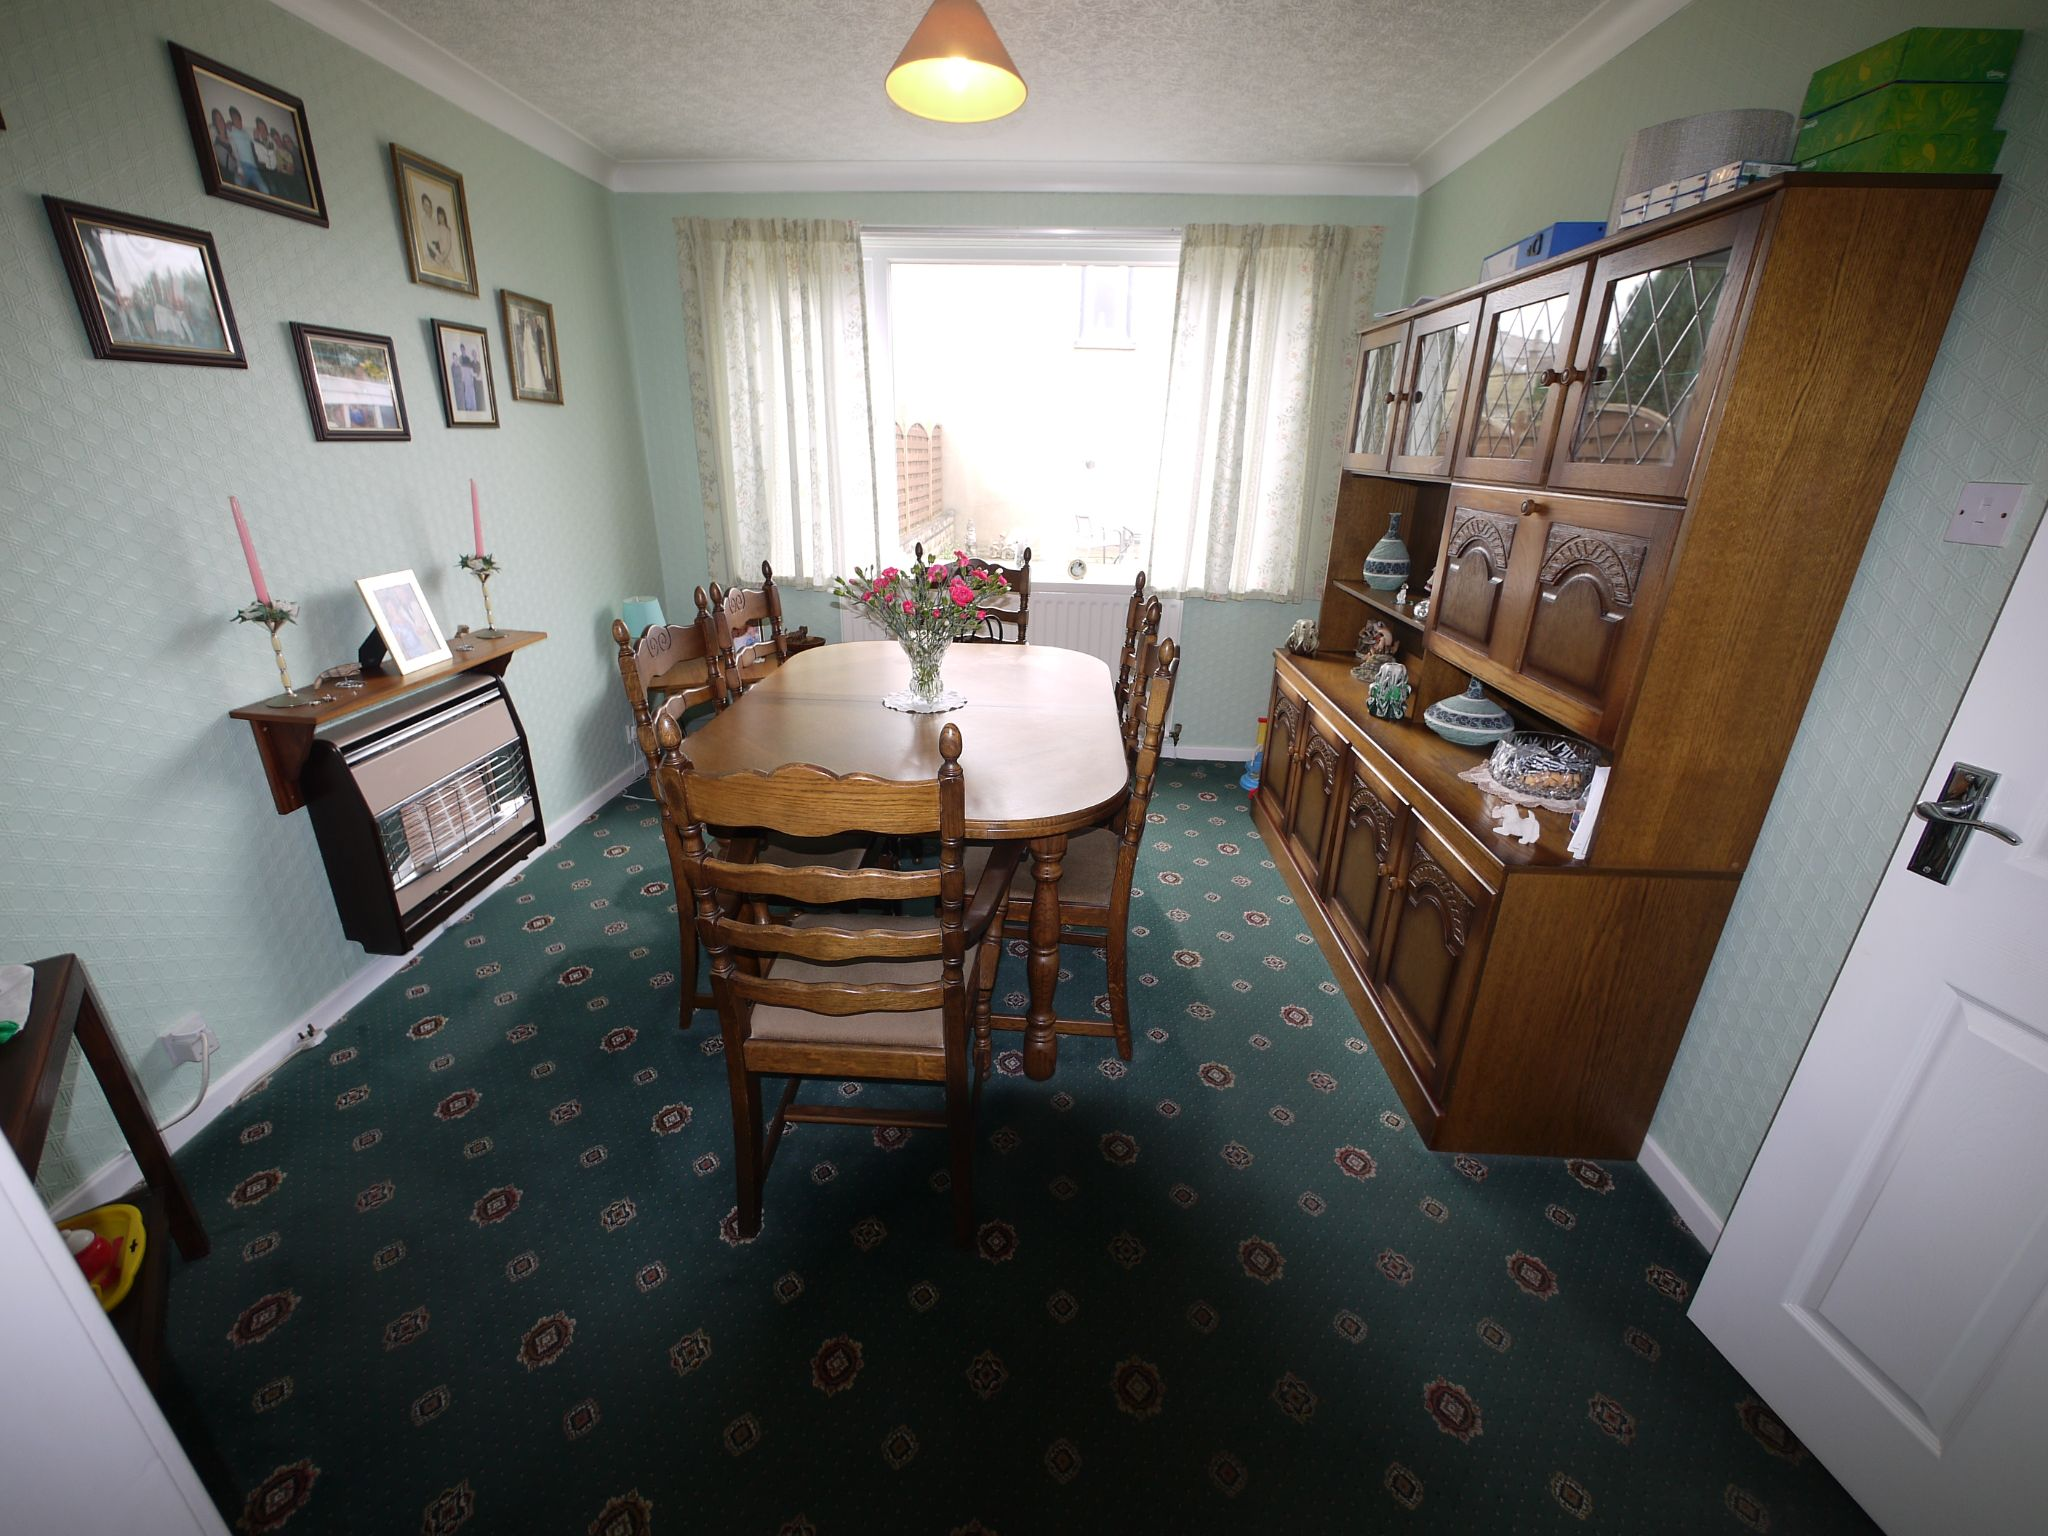 3 bedroom semi-detached house SSTC in Brighouse - Photograph 6.